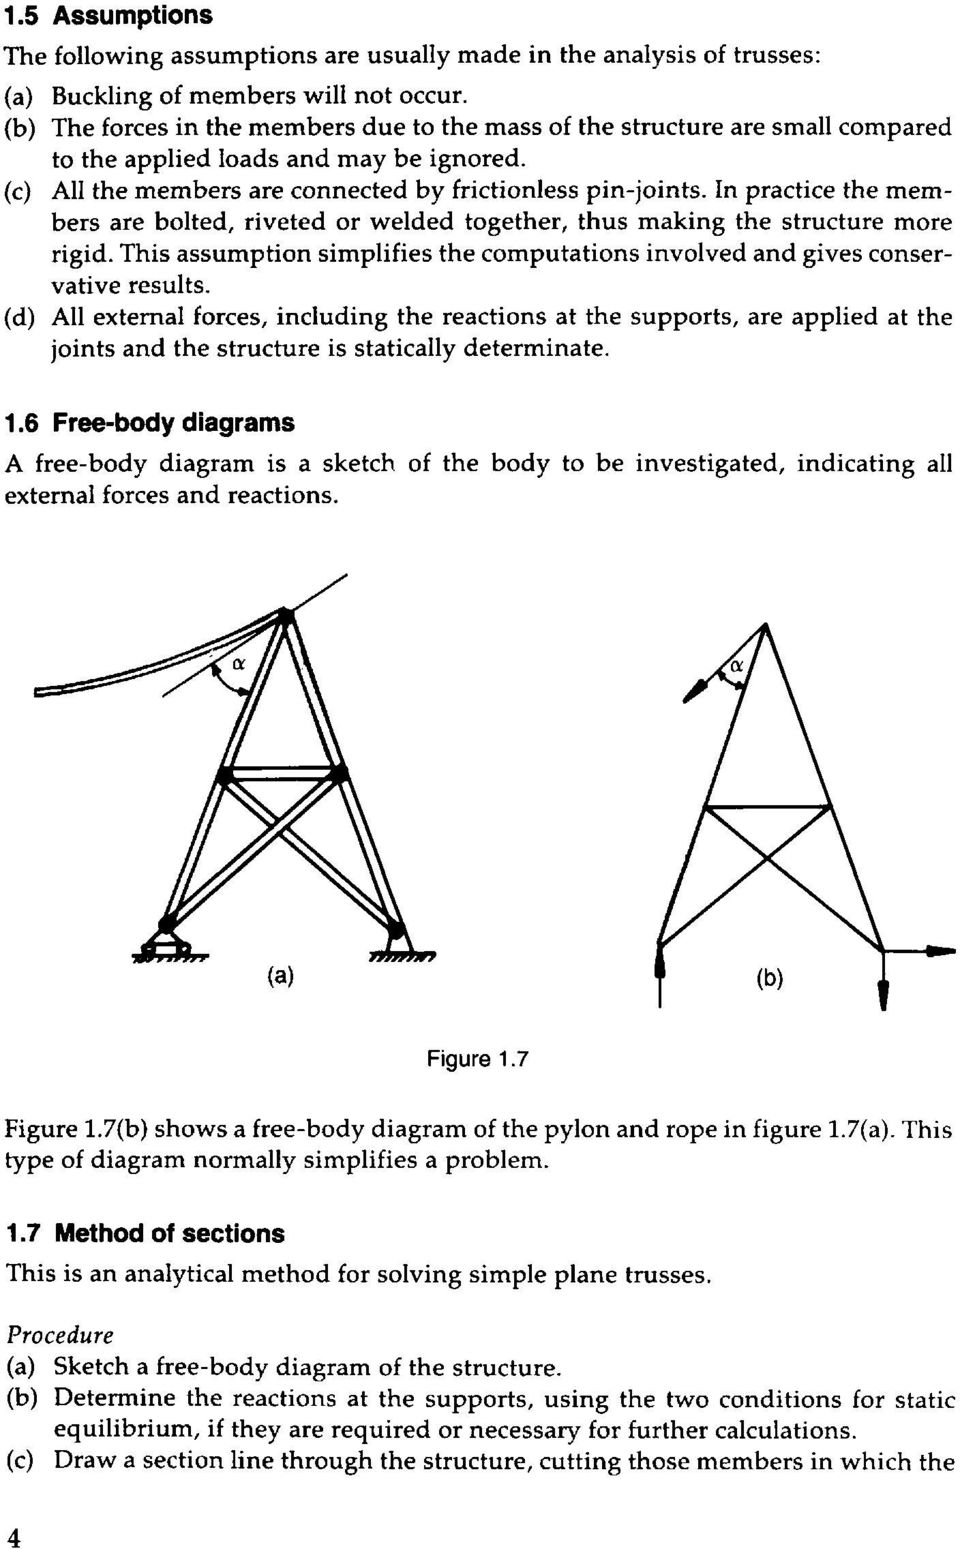 Strength Of Materials For Technicians Pdf Freebody Diagrams Be Body Segments Involved In This Movement Practice The Members Are Bolted Riveted Or Welded Together Thus Making Structure